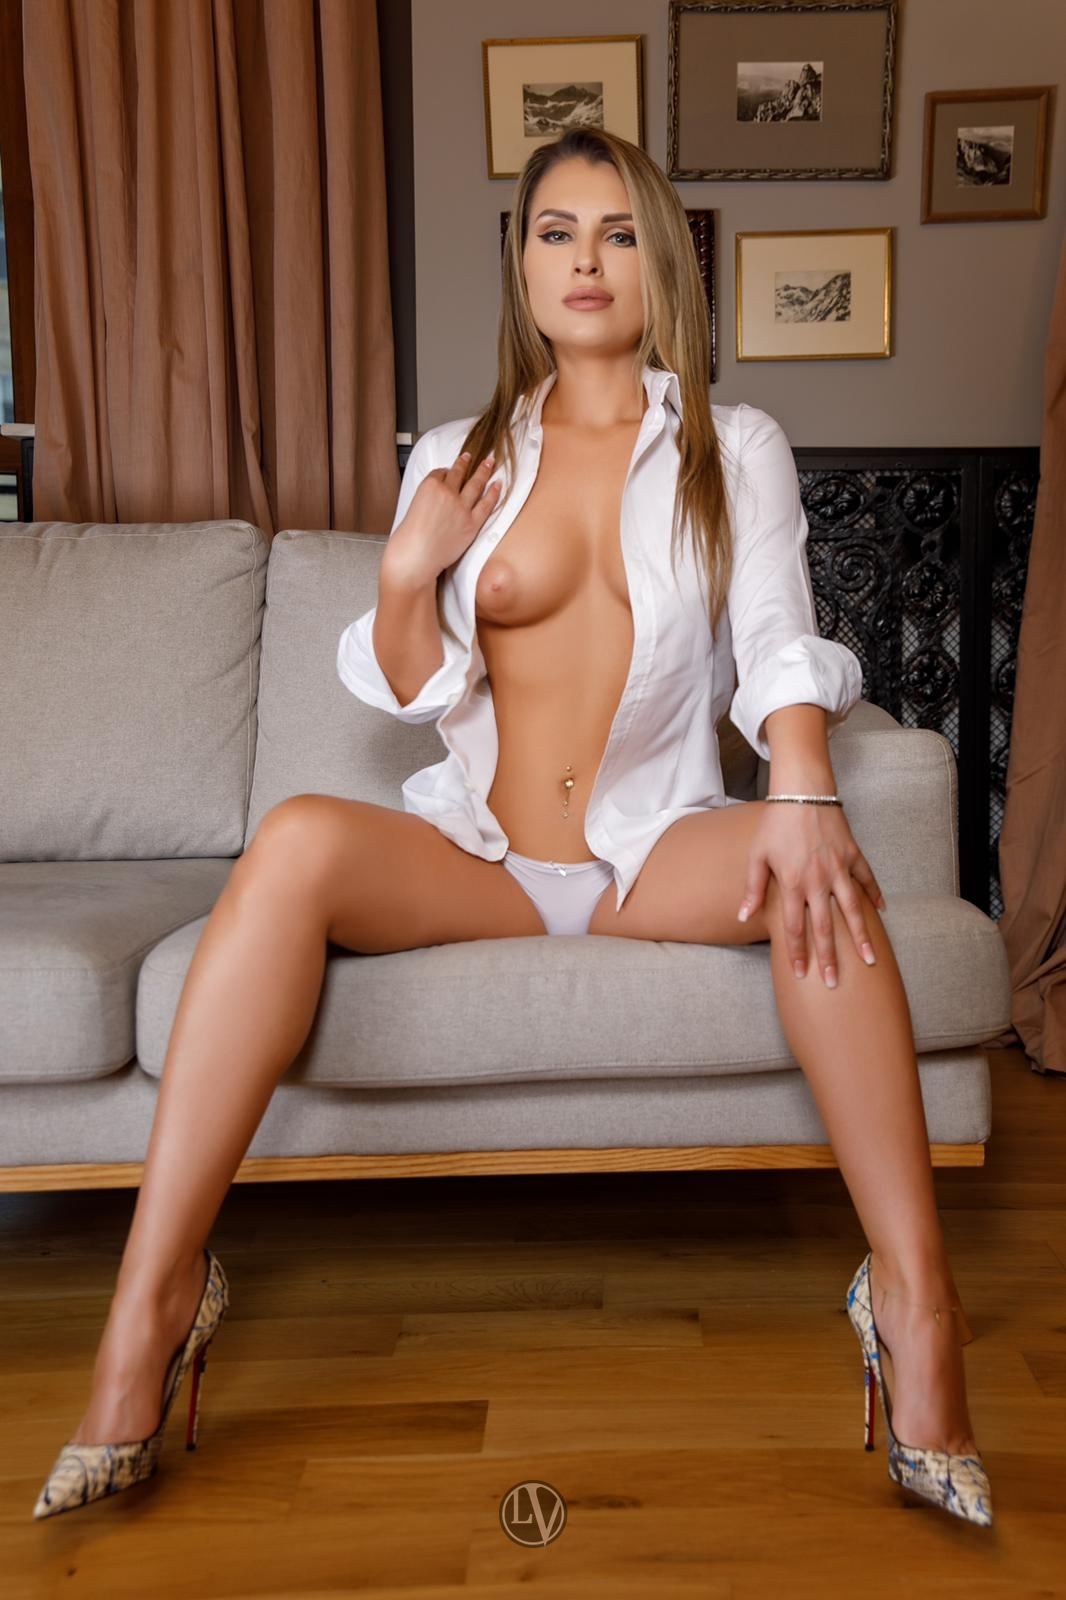 June sitting on the sofa in a white shirt and heels